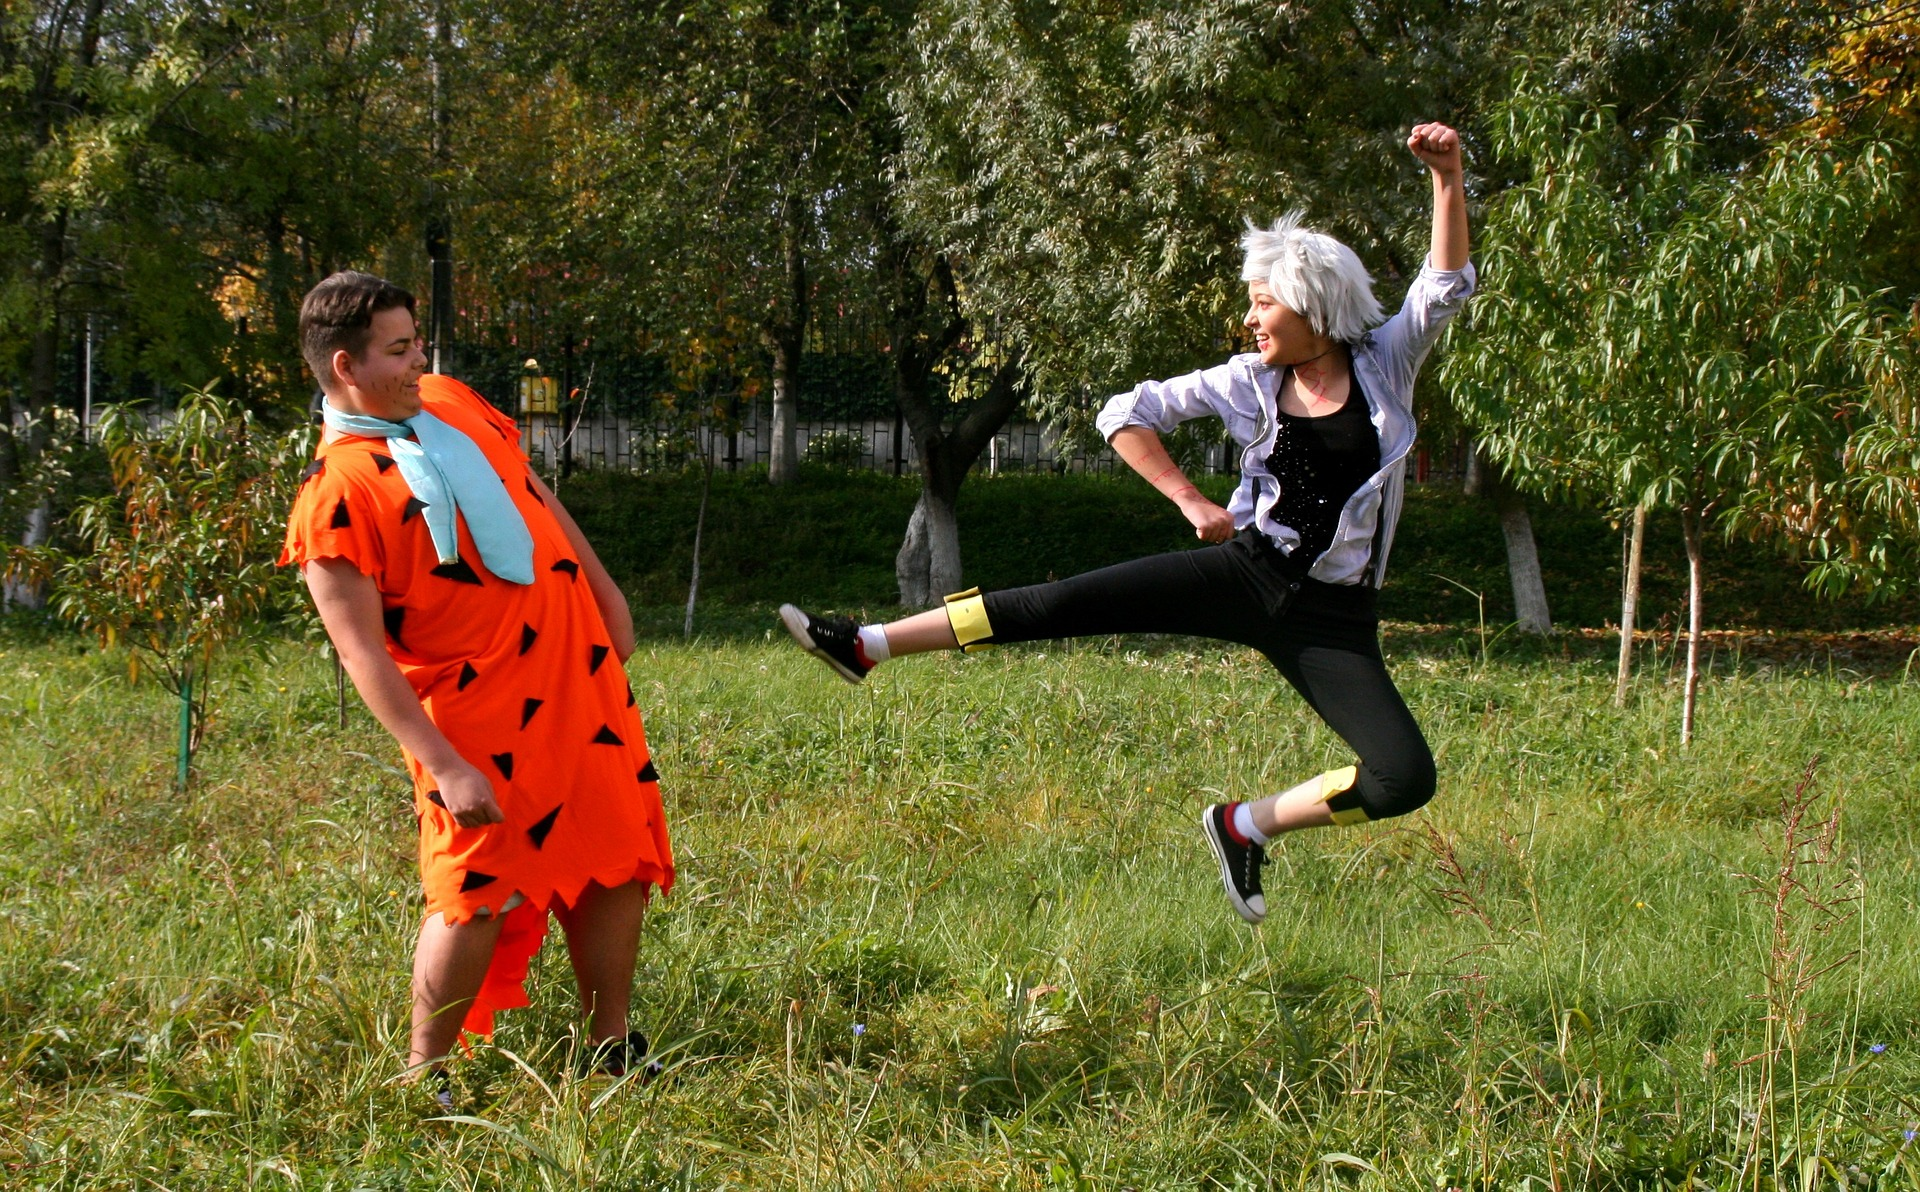 people dressed as fred and wilma flintstone